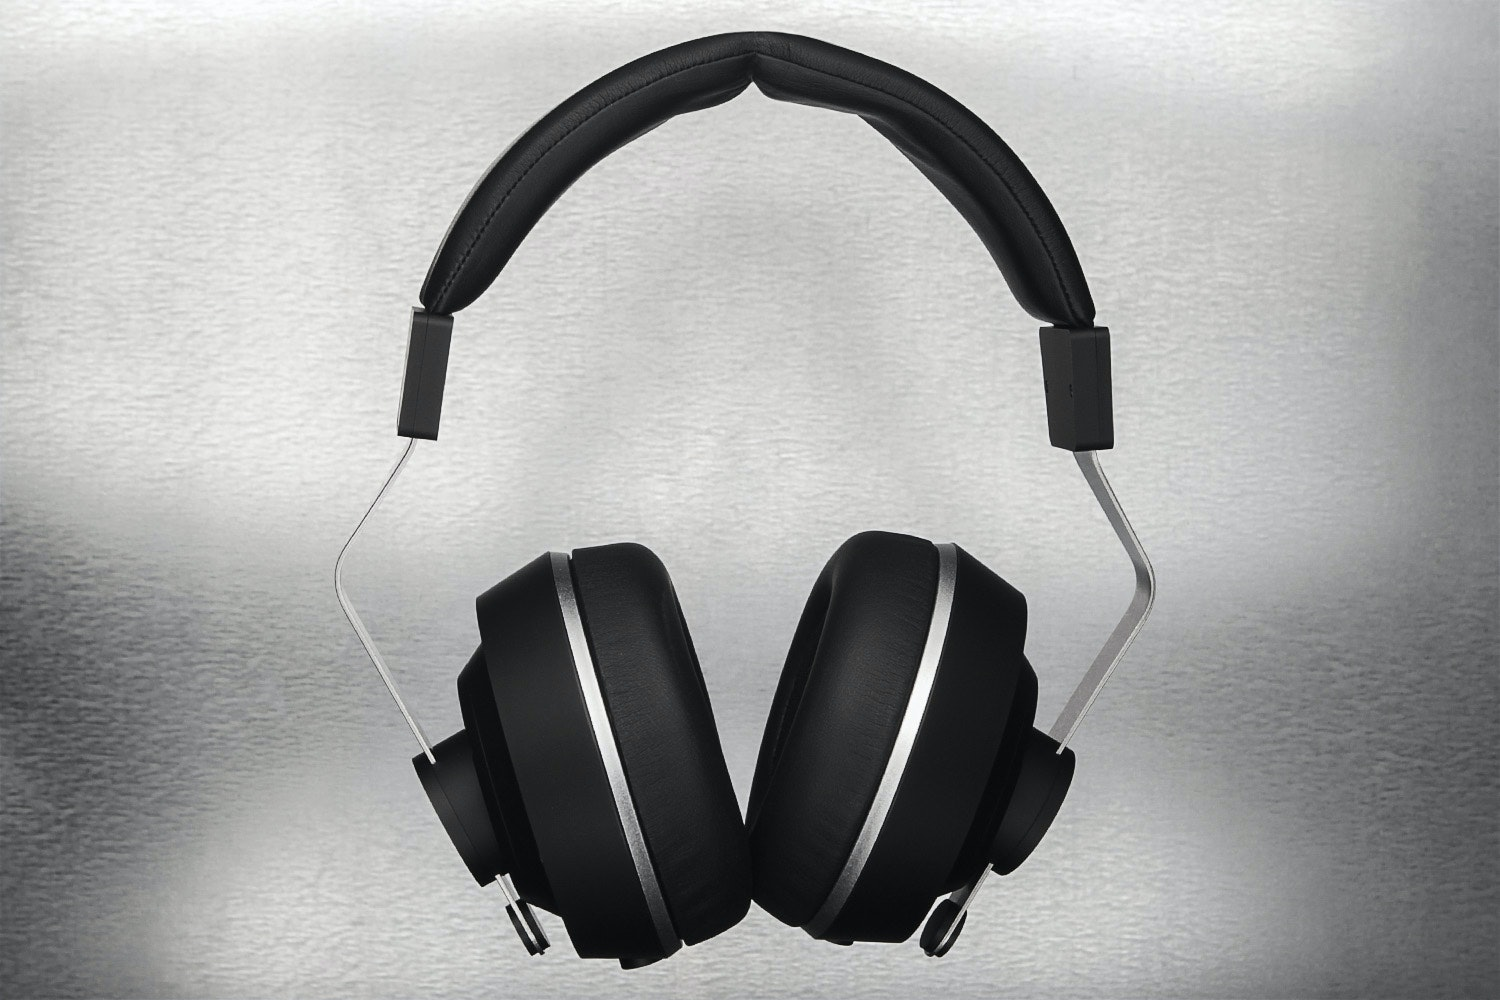 Final Audio Design Sonorous IV Headphones